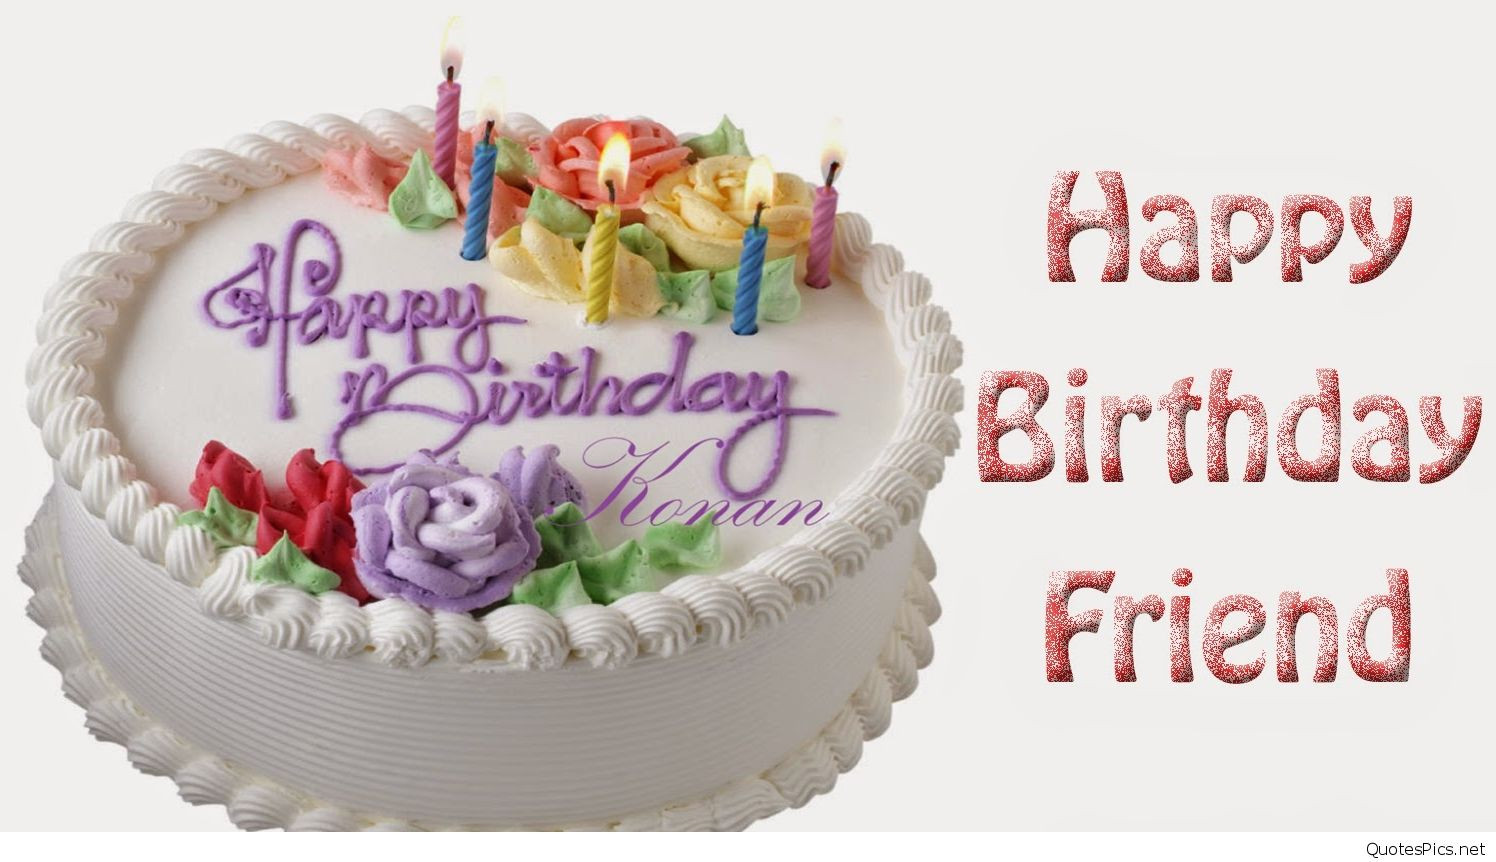 Best ideas about Birthday Wishes For Friends . Save or Pin Best happy birthday card wishes friend friends sayings Now.